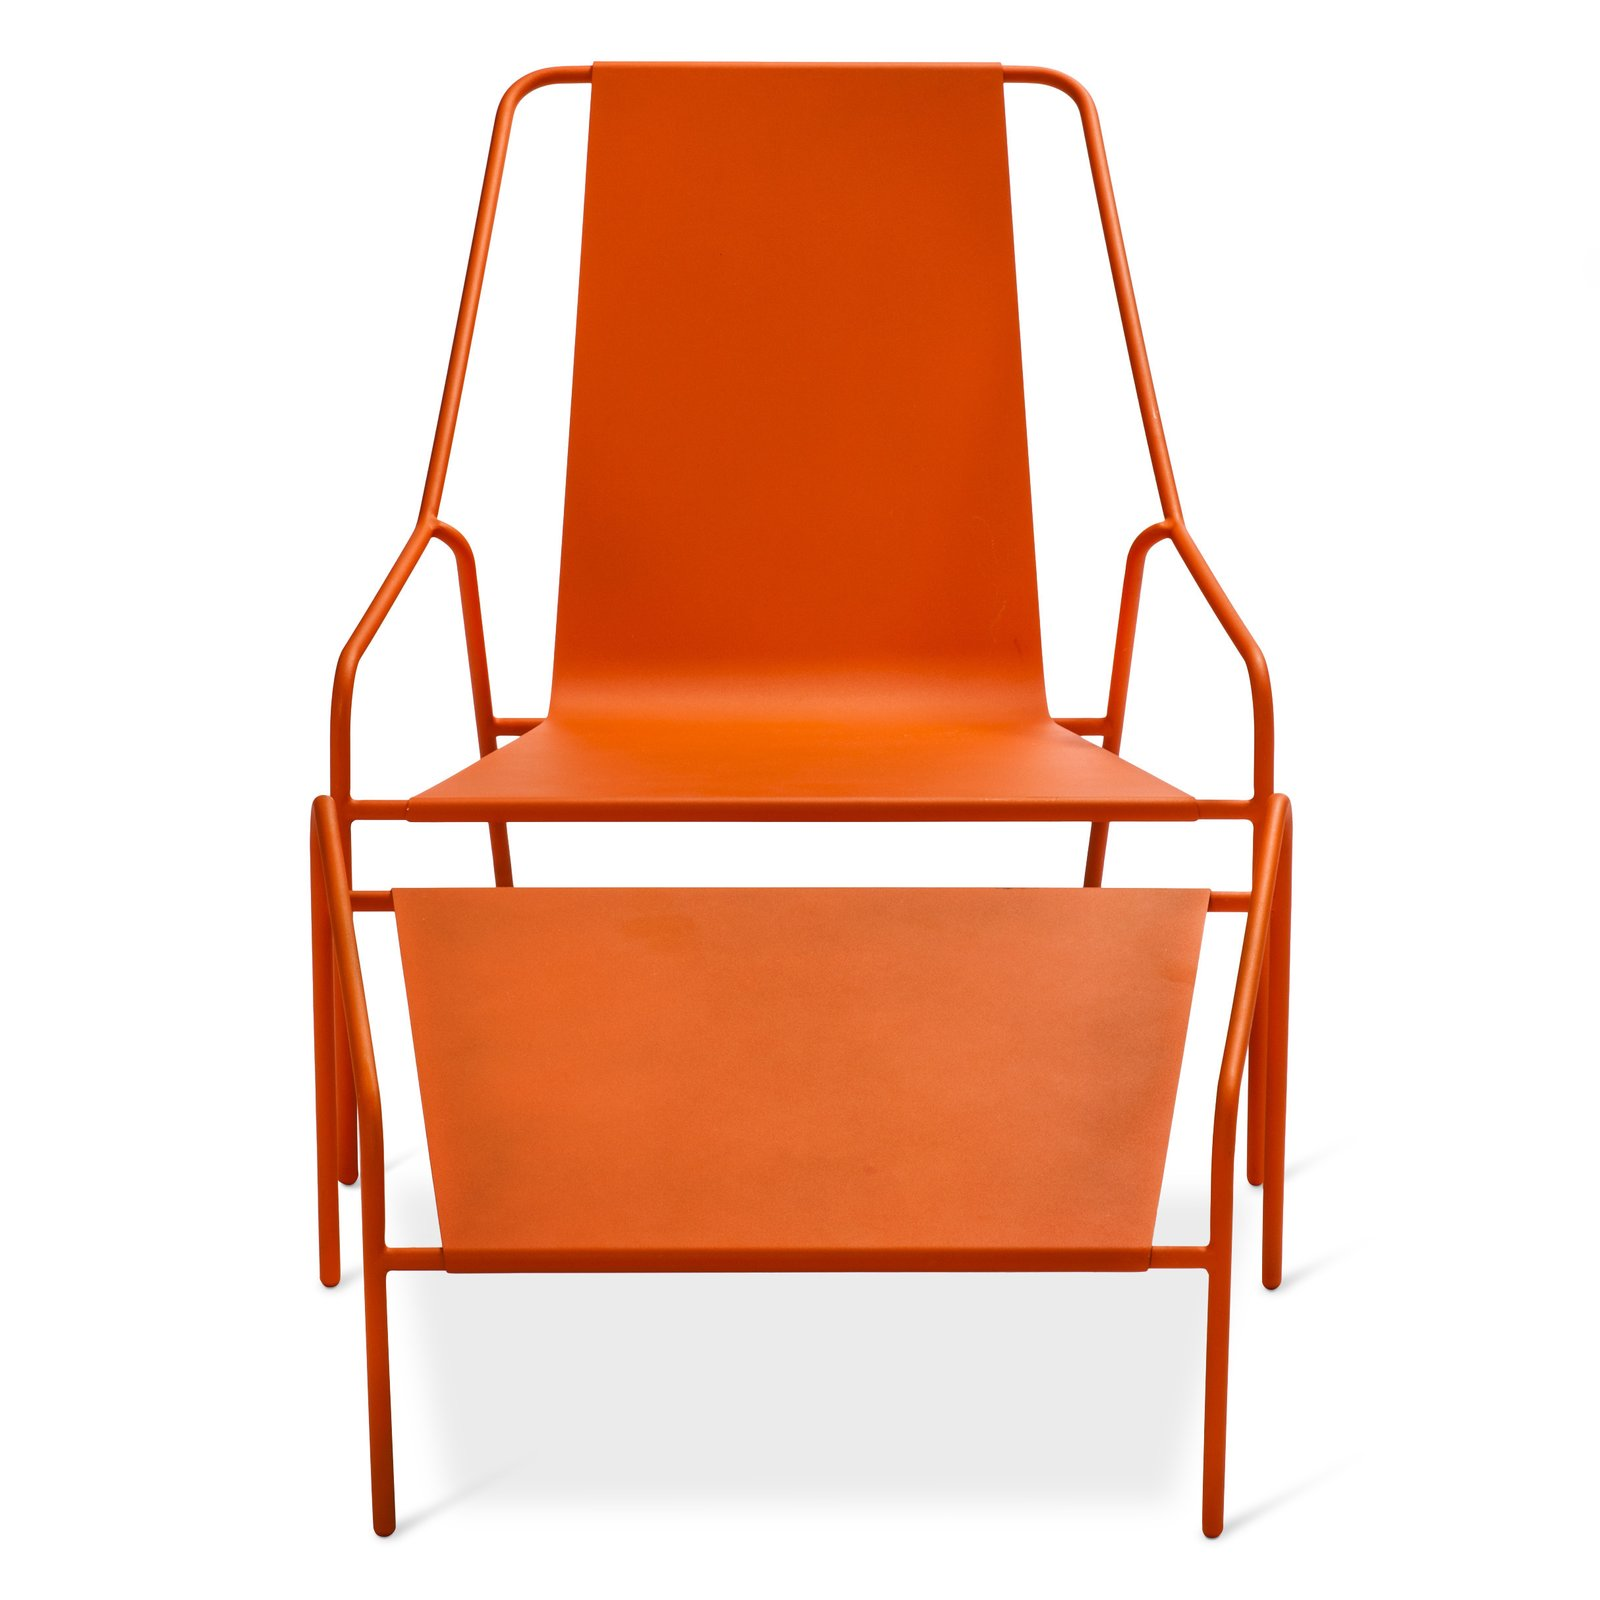 Posture Chair and Ottoman Set, $269.99, available in gray, orange, or white; designed by Chris Deam and Nick Dine for Modern by Dwell Magazine for Target   Photo 9 of 17 in Modern by Dwell Magazine: Outdoor Collection